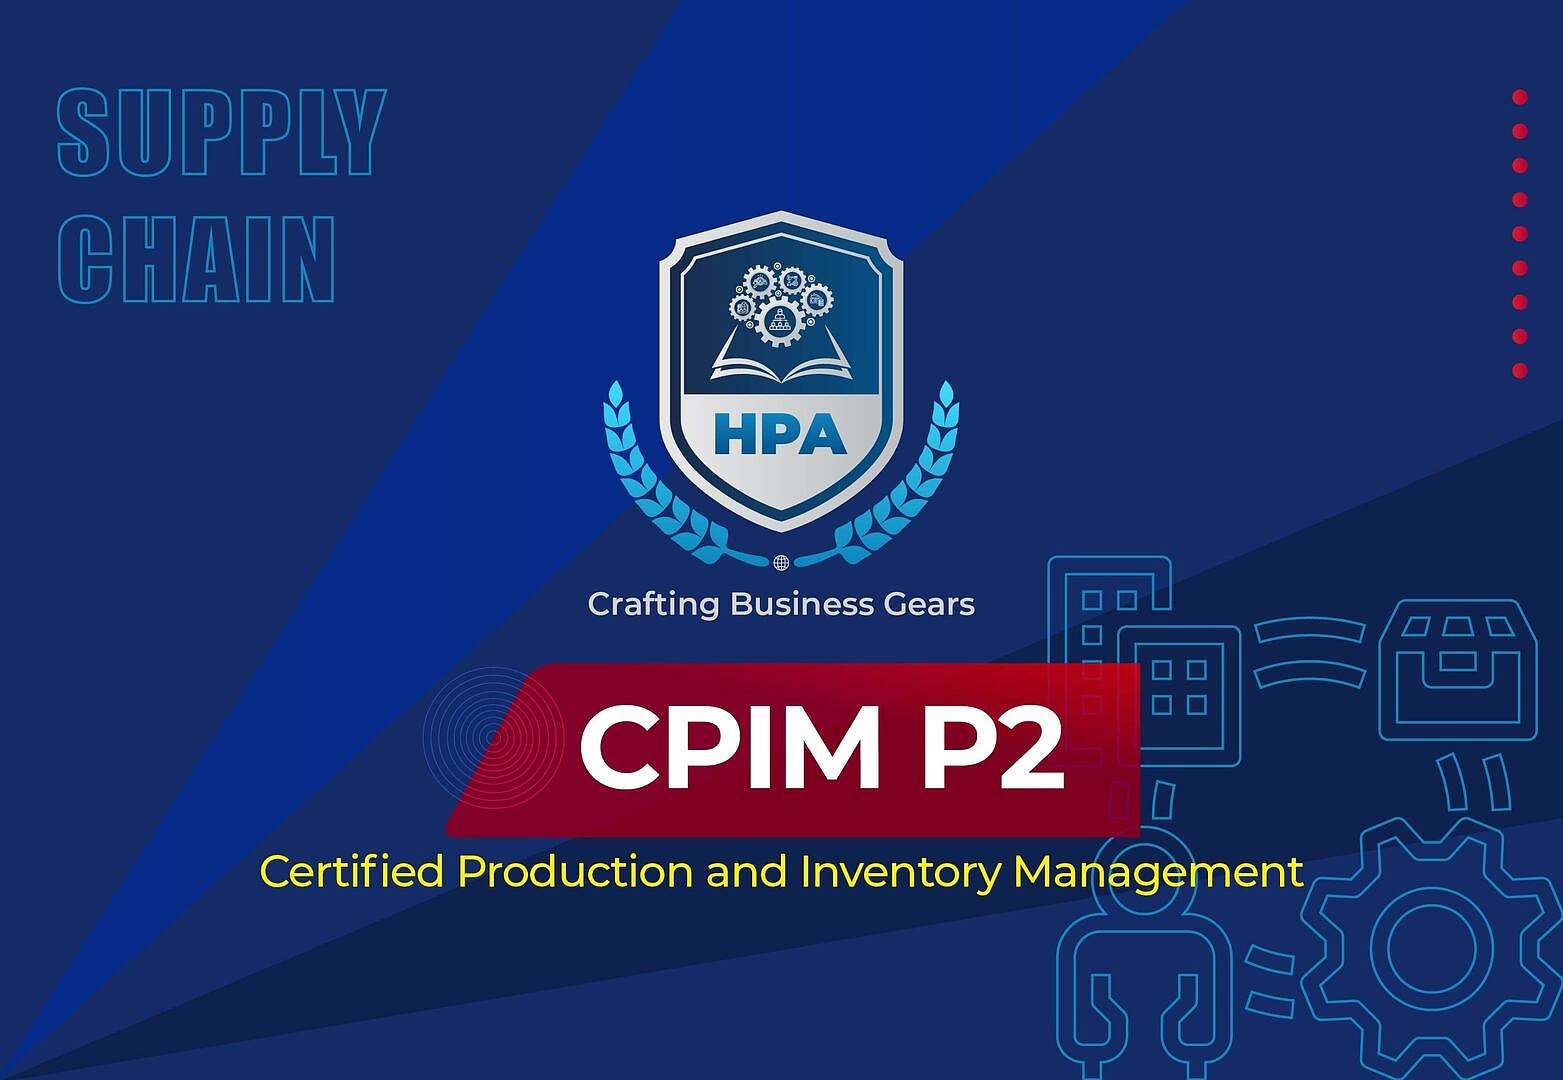 Certified Production and Inventory Management p2